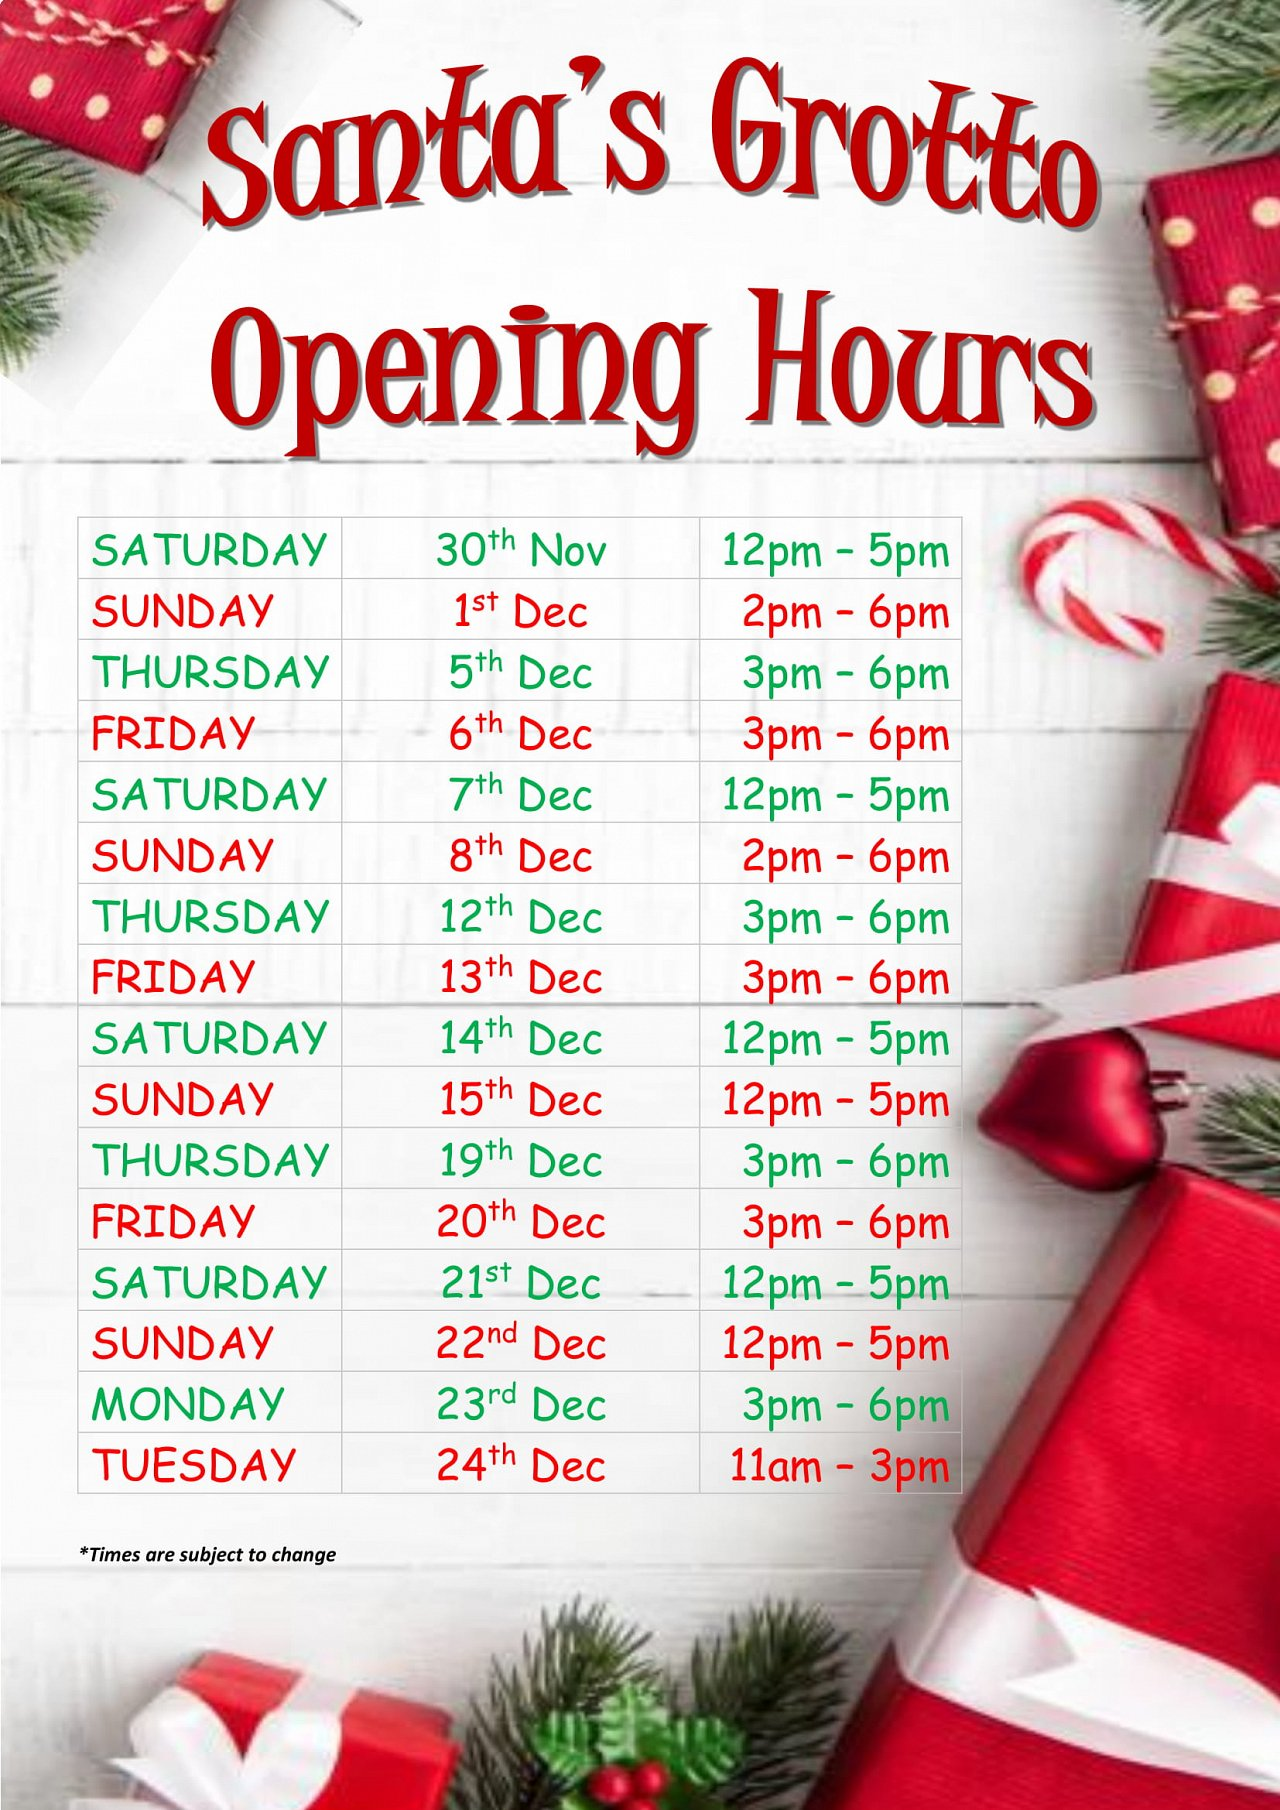 SANTA GROTTO OPENING HOURS